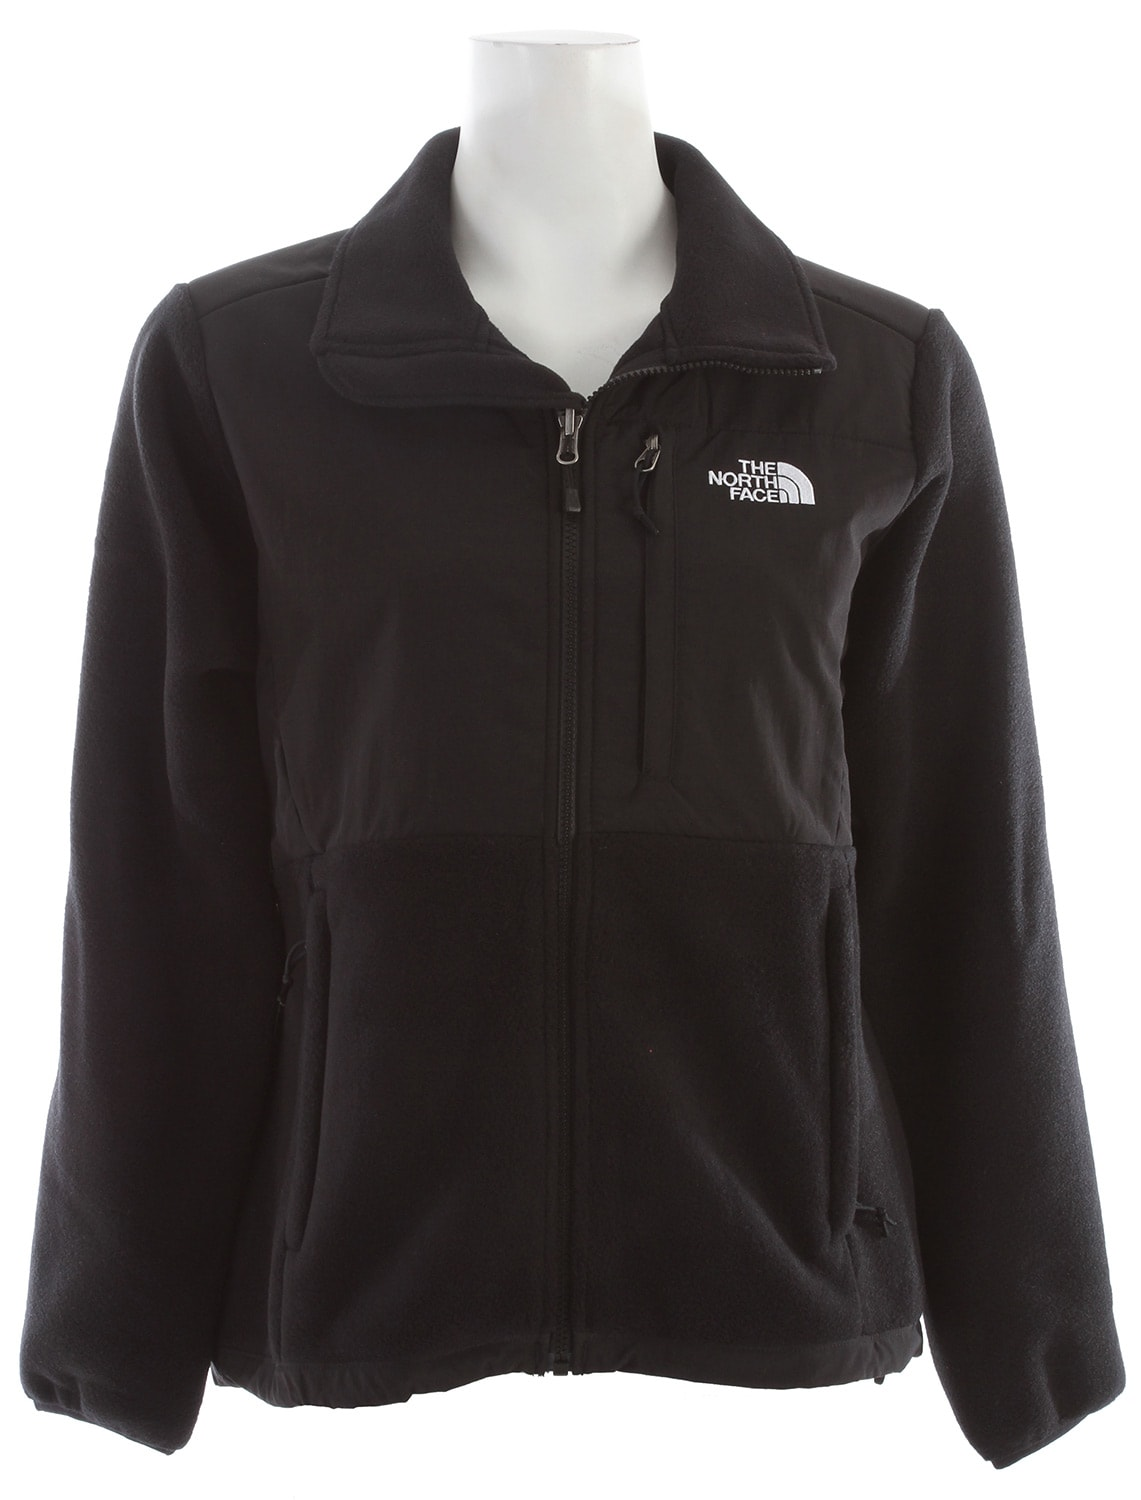 The North Face Denali Jacket Womens